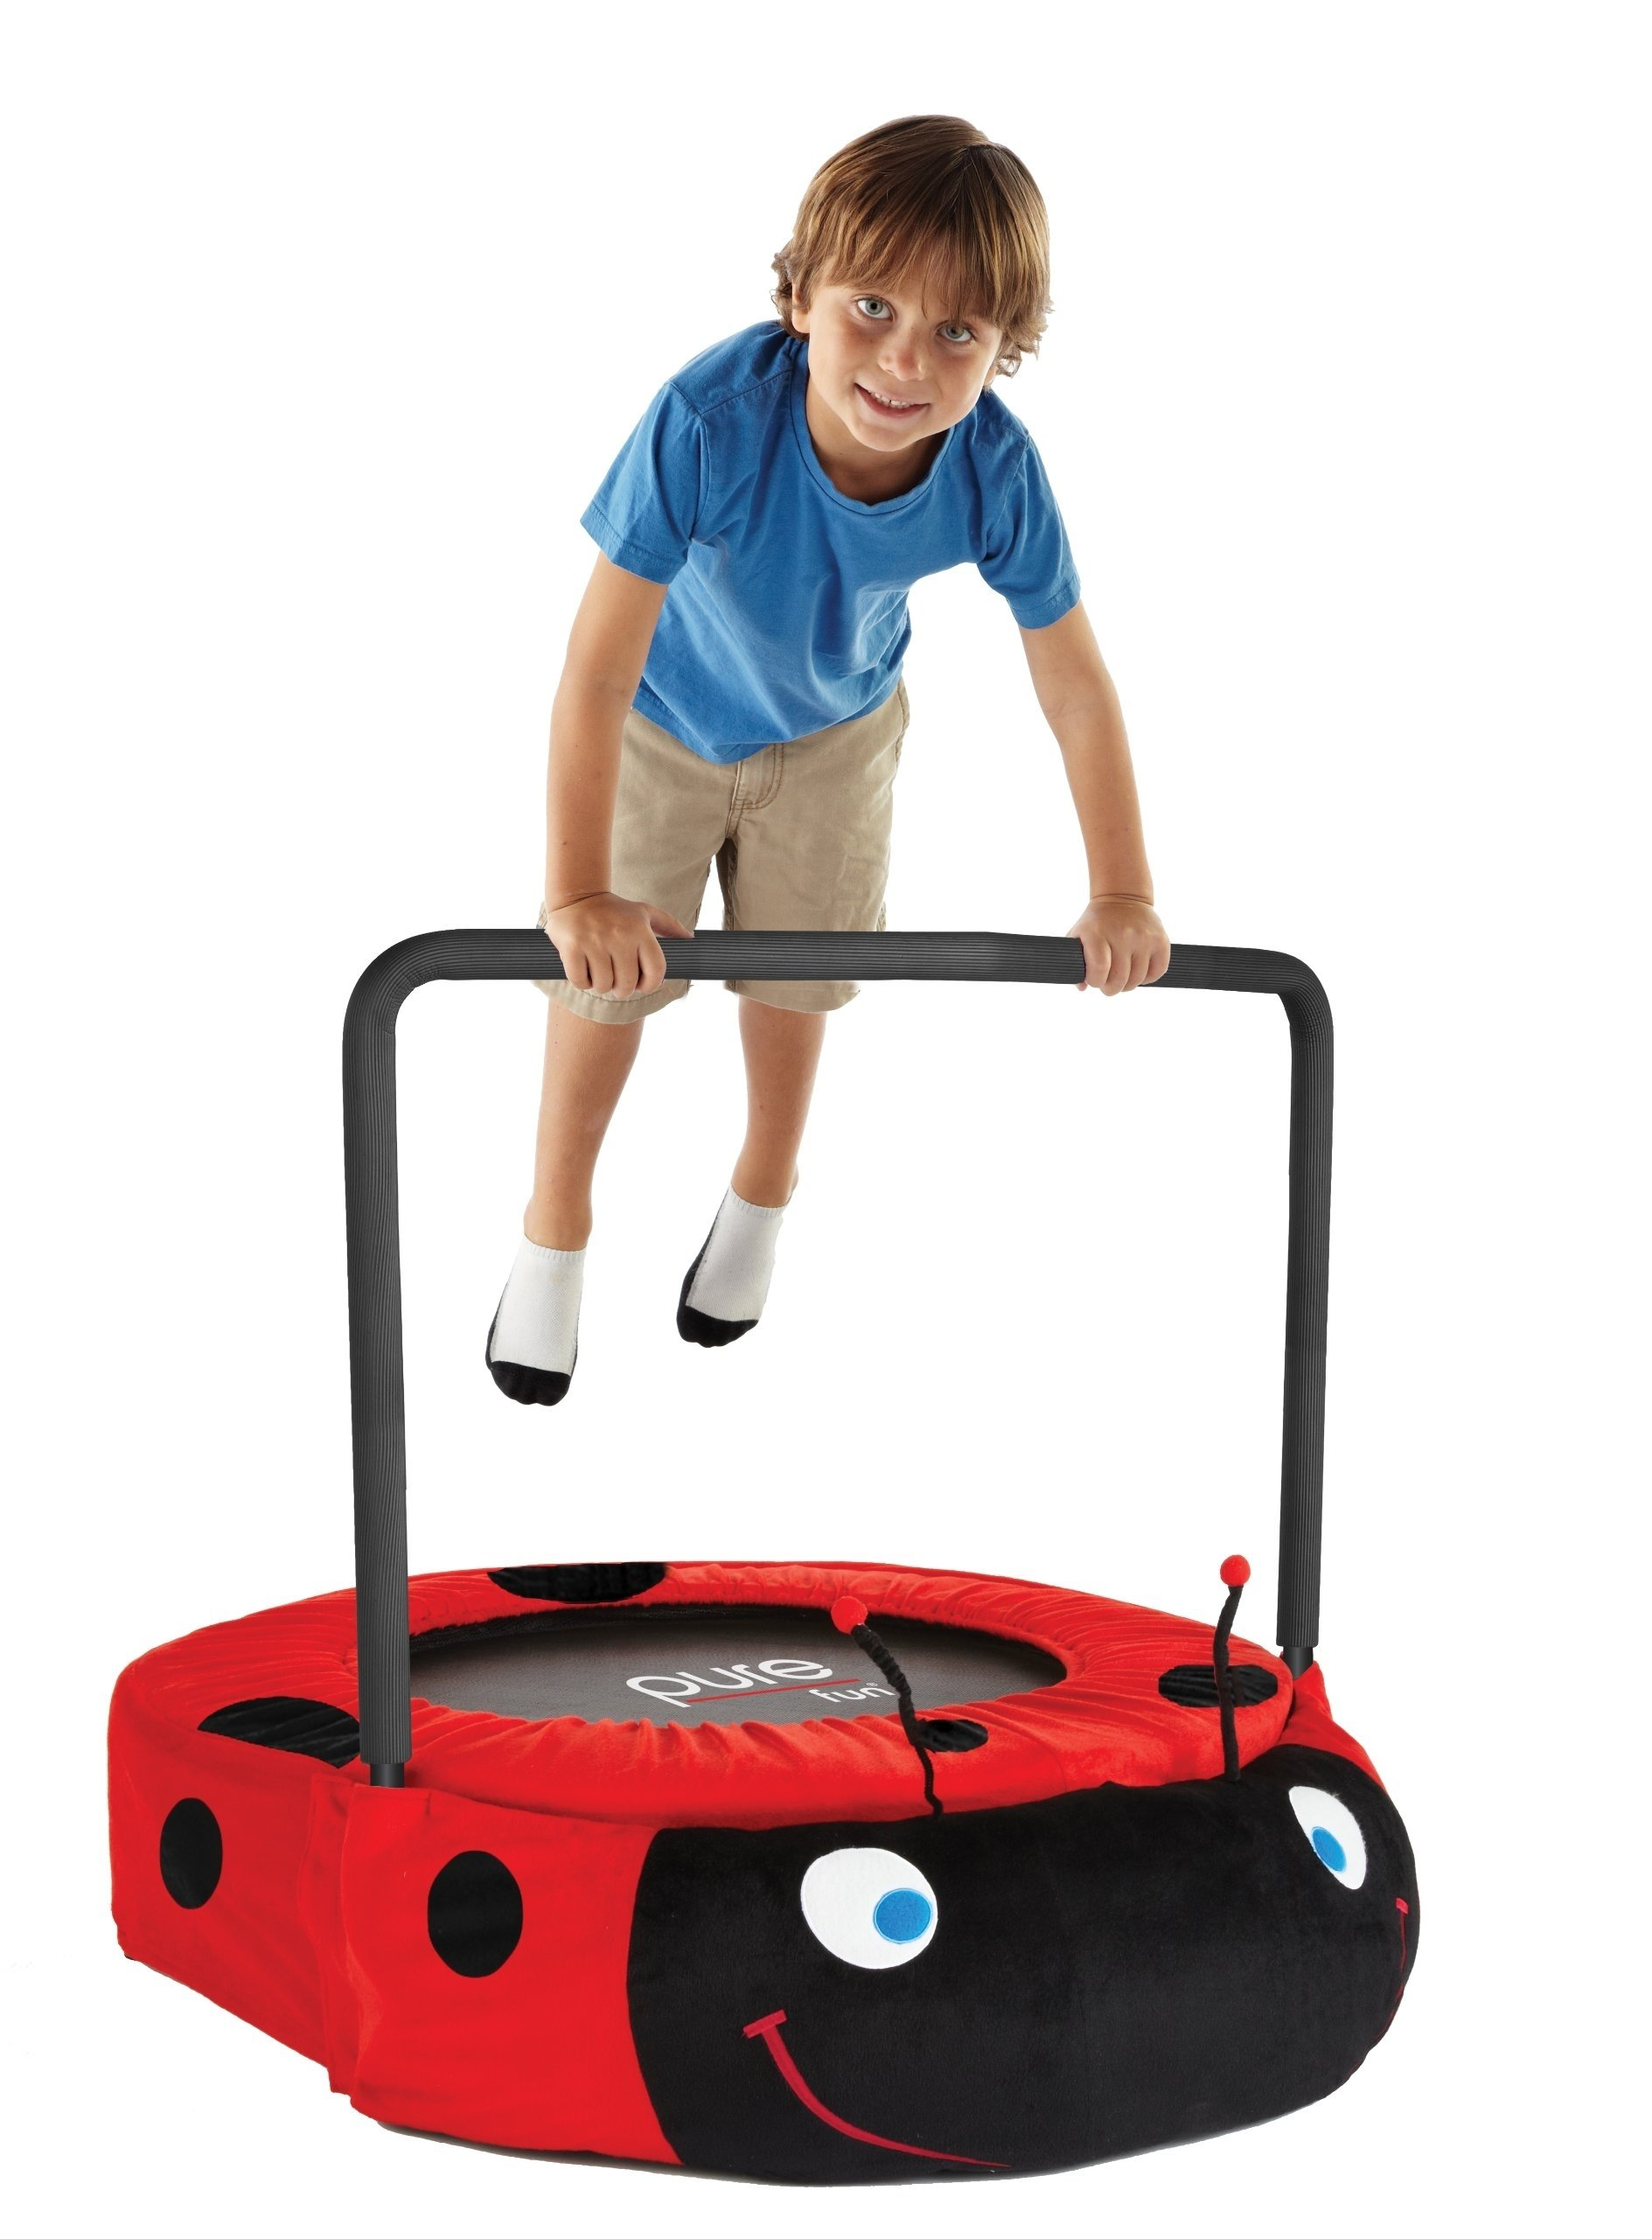 10 Stunning Gift Ideas For 5 Year Old Boy best gifts and toys for 5 year old boys gift trampolines and toy 2020